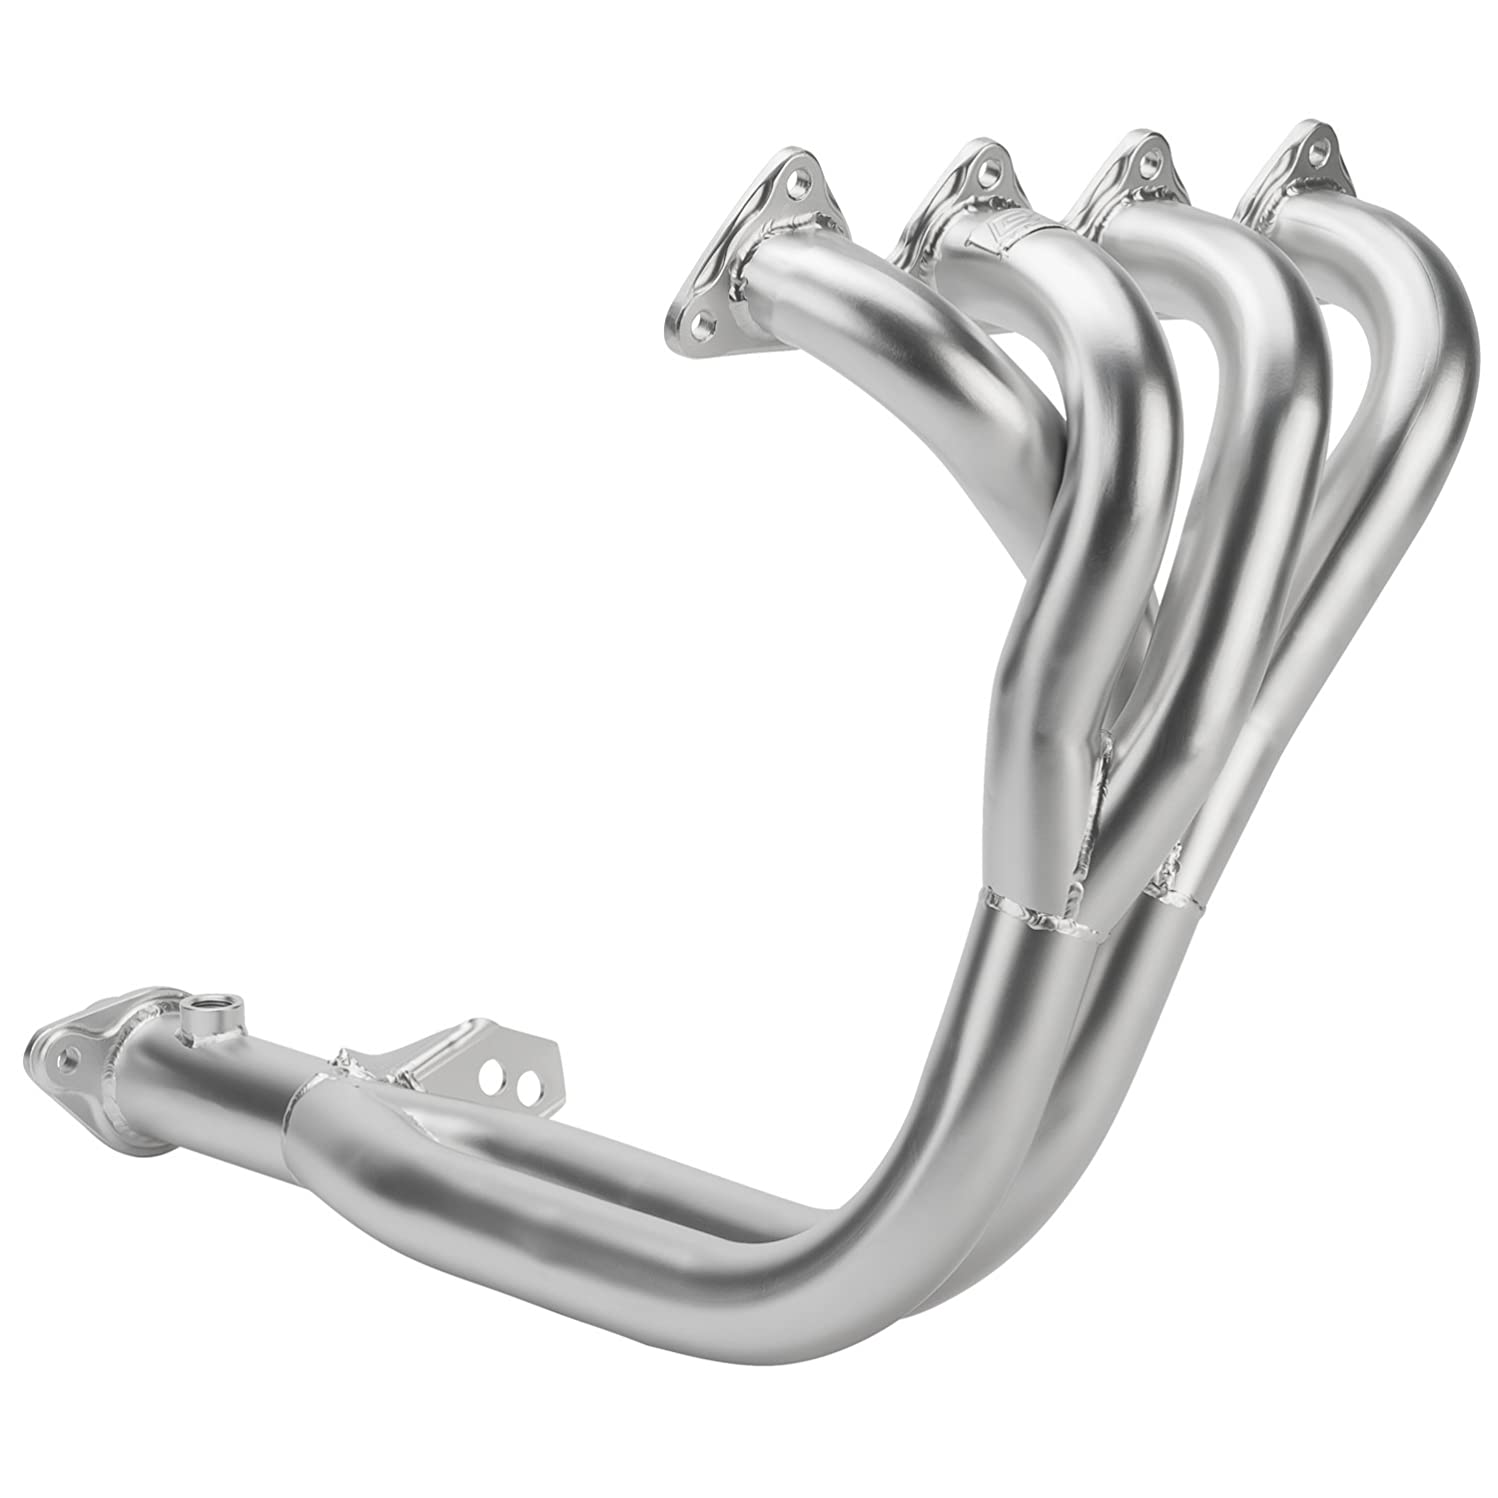 DC Sports AHC6511 Acura Integra GS-R 4-2-1 Header with Ceramic Coating, Silver